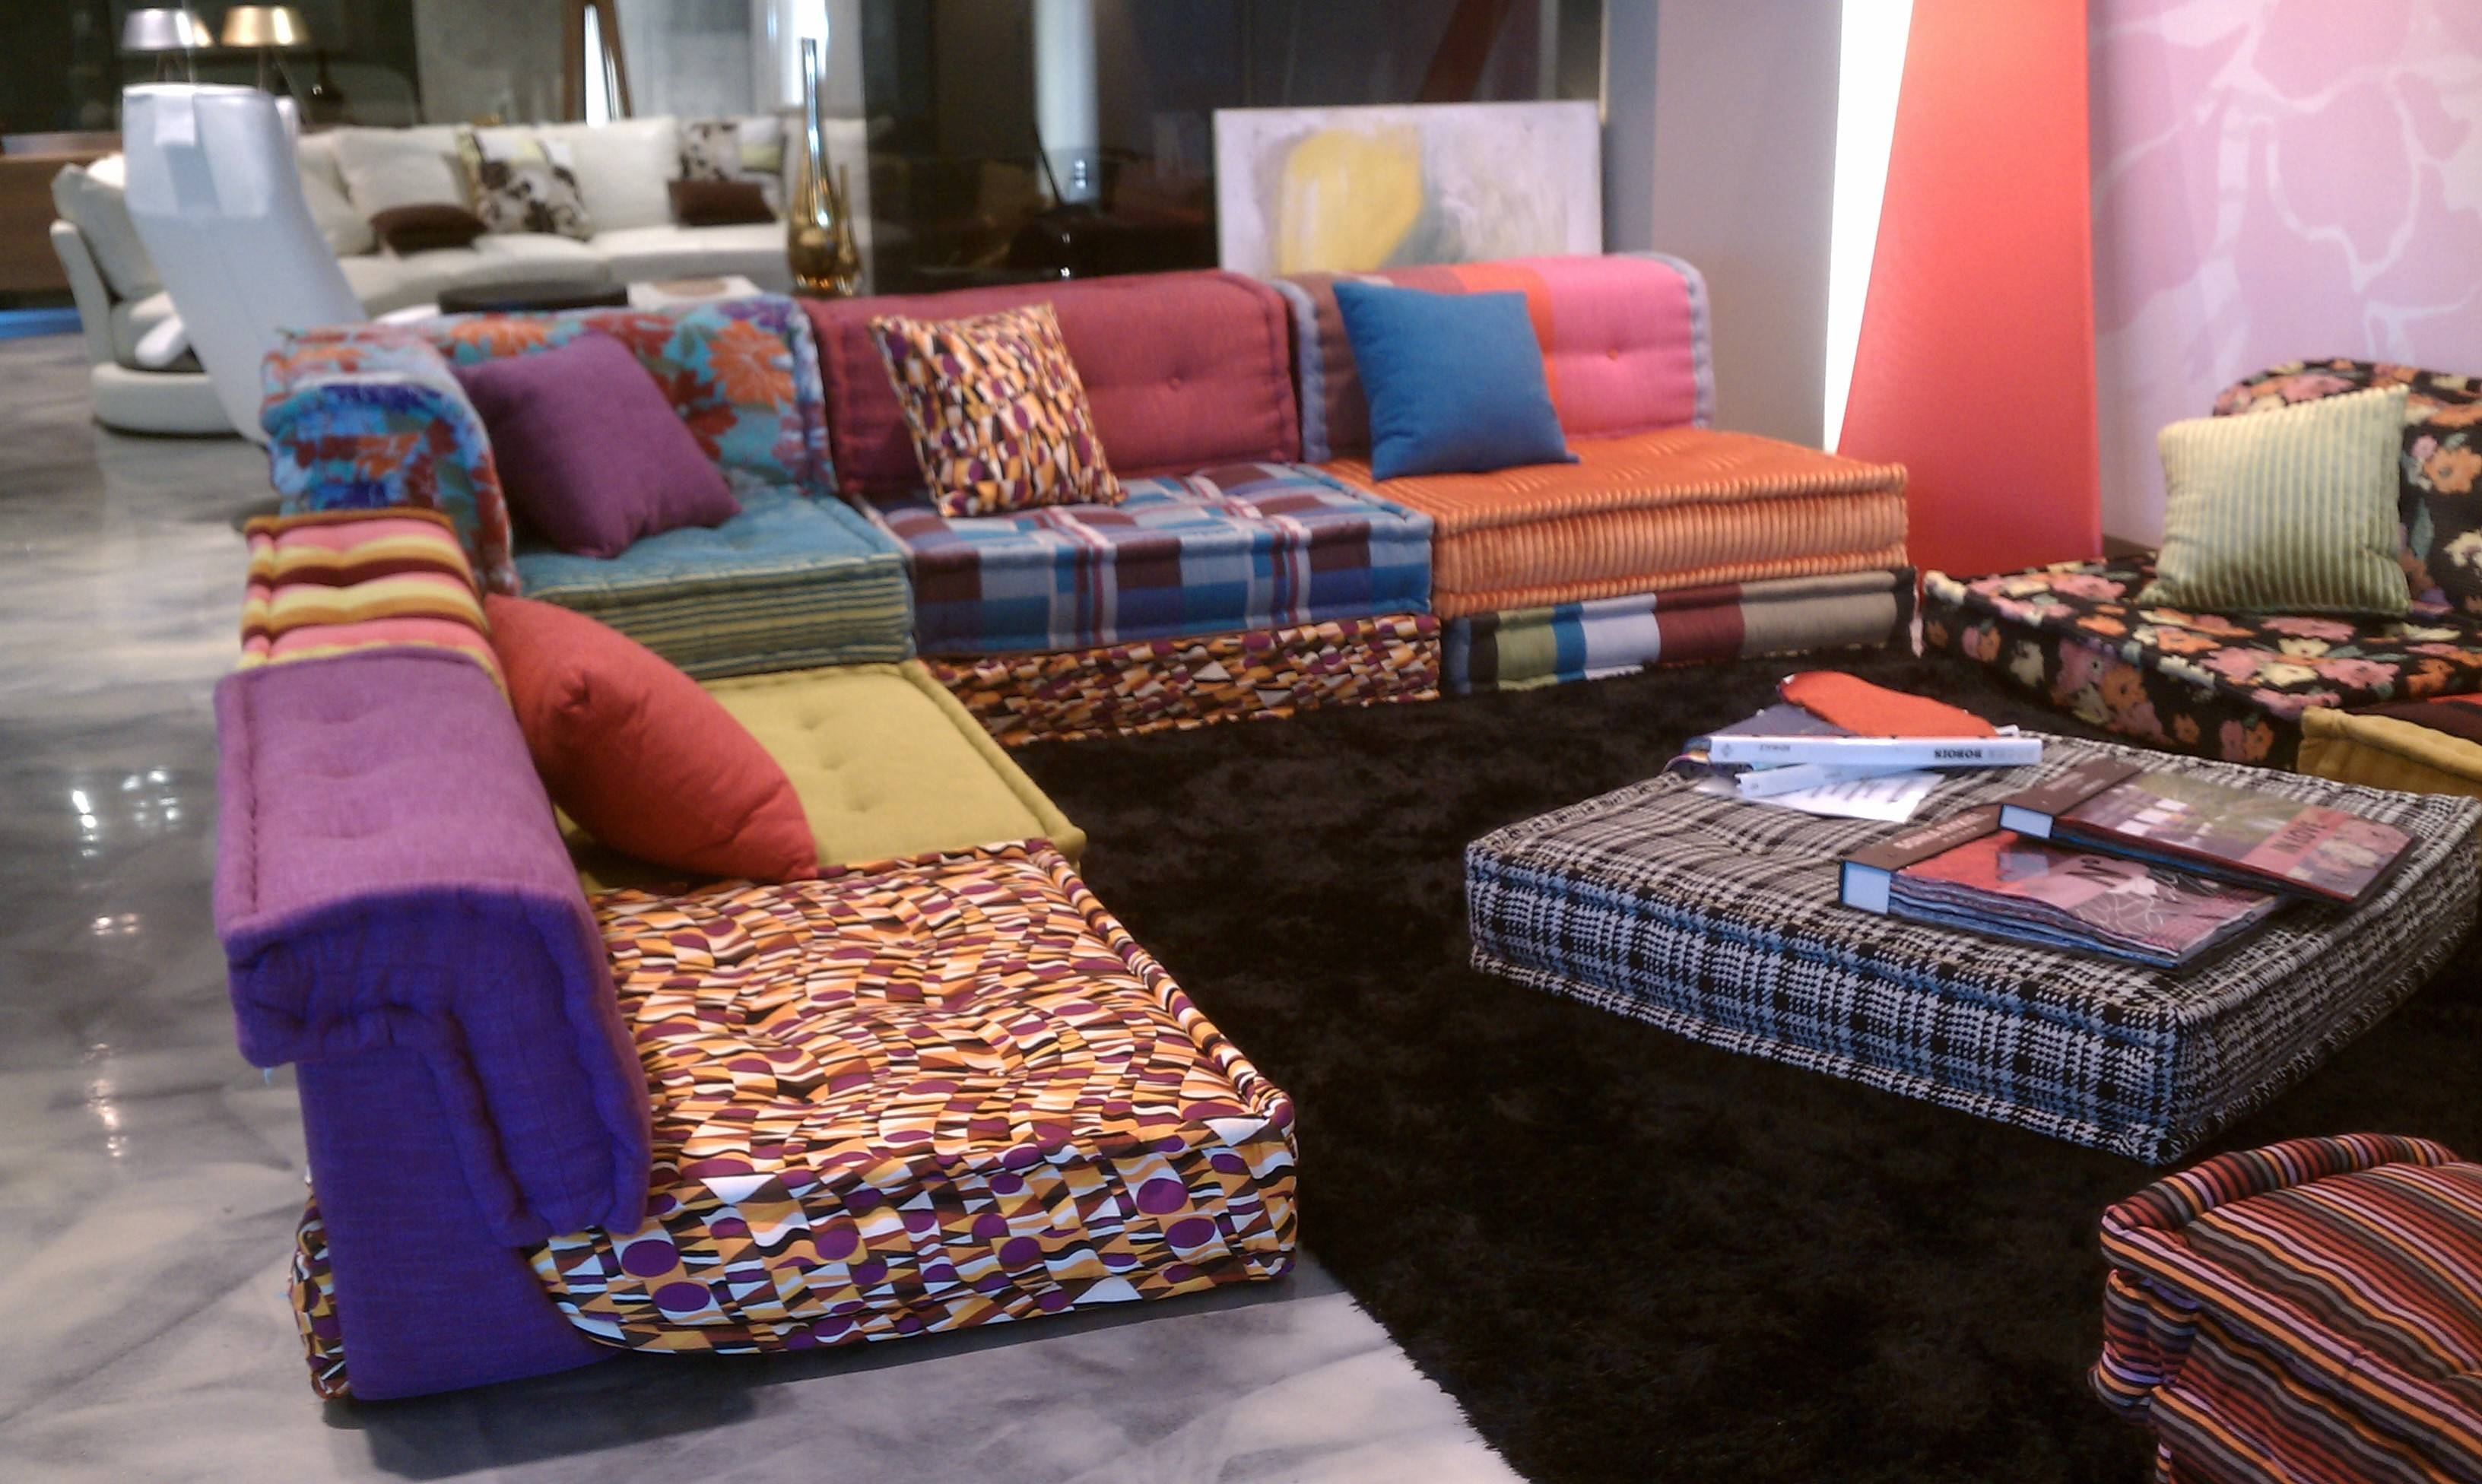 Dream Couch: Missoni Bohemian Sofa | The Cherie Bomb With Regard To Mahjong Sofas (View 4 of 15)